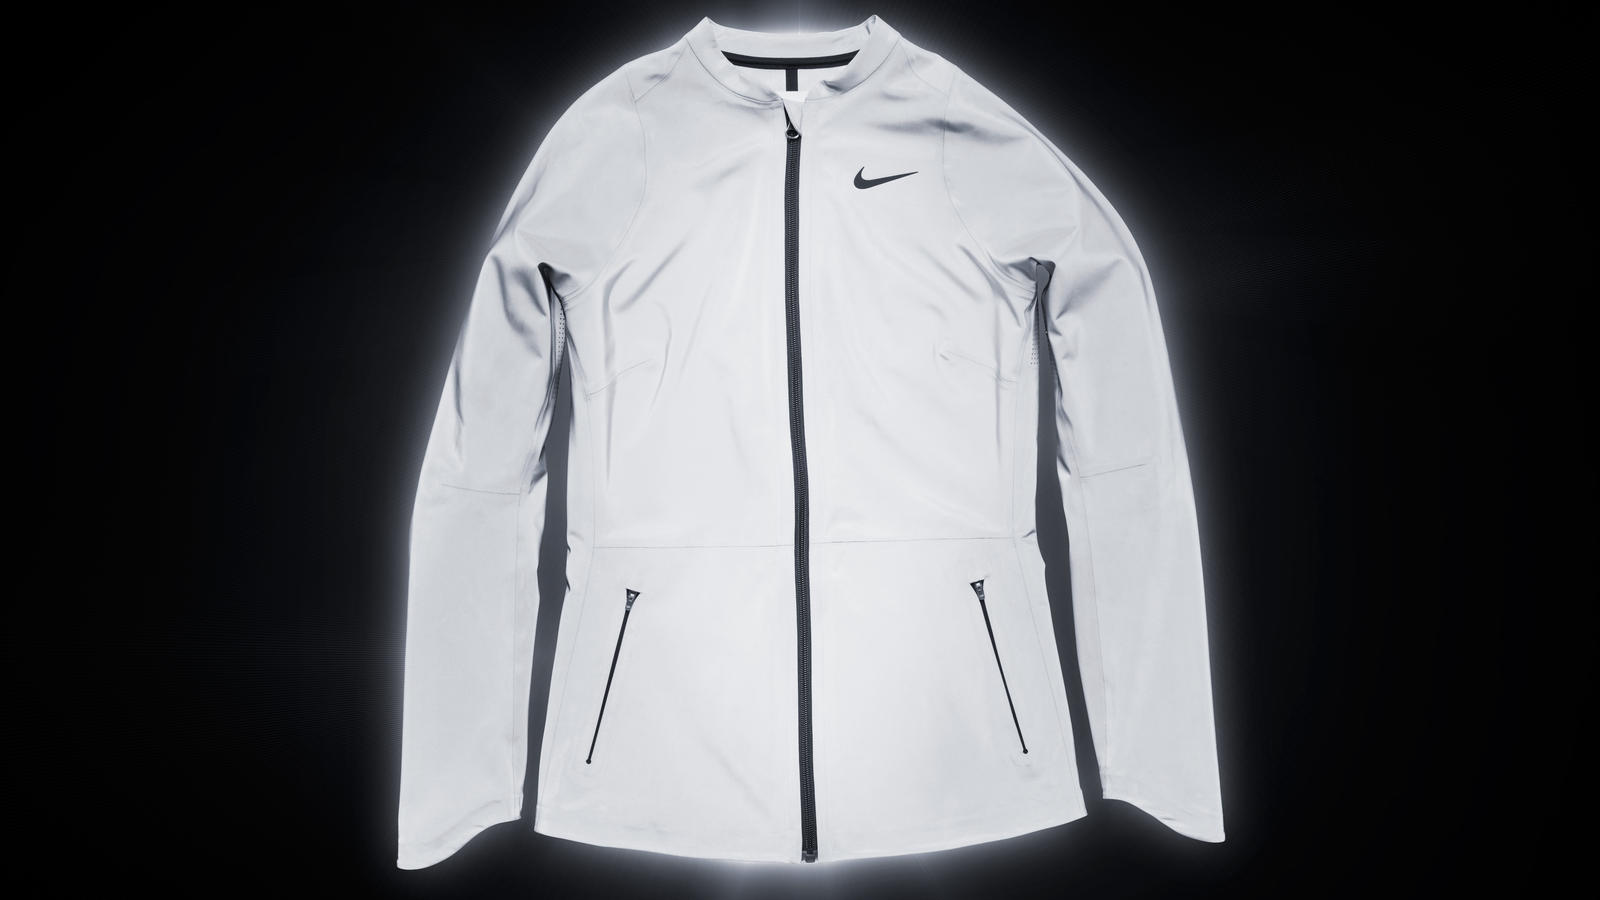 Nike Tennis Dominates The Night With Reflective  Vapor Flash ... 49dc3ad05